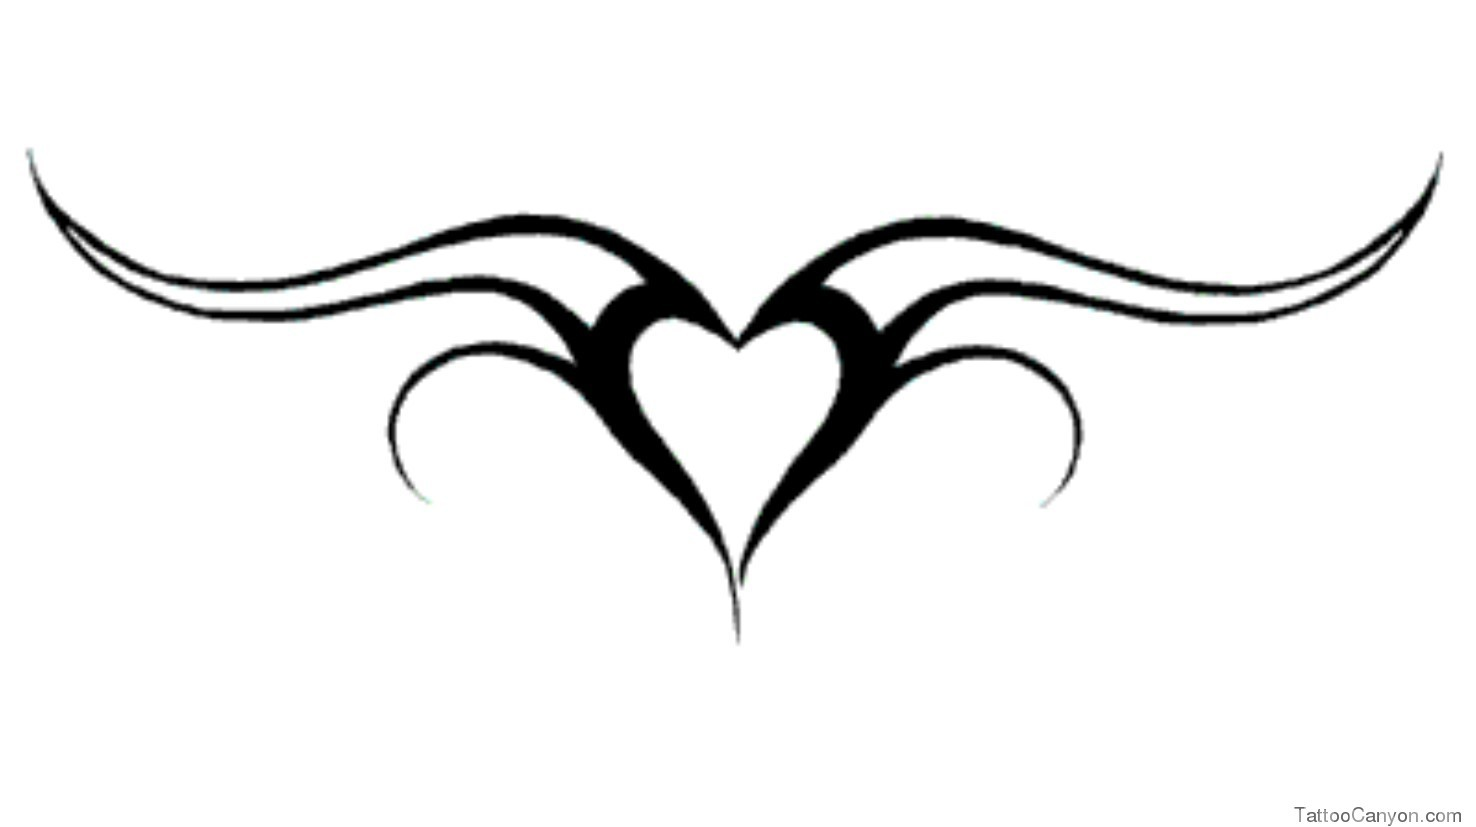 Tribal Heart Tattoo Design photo - 3